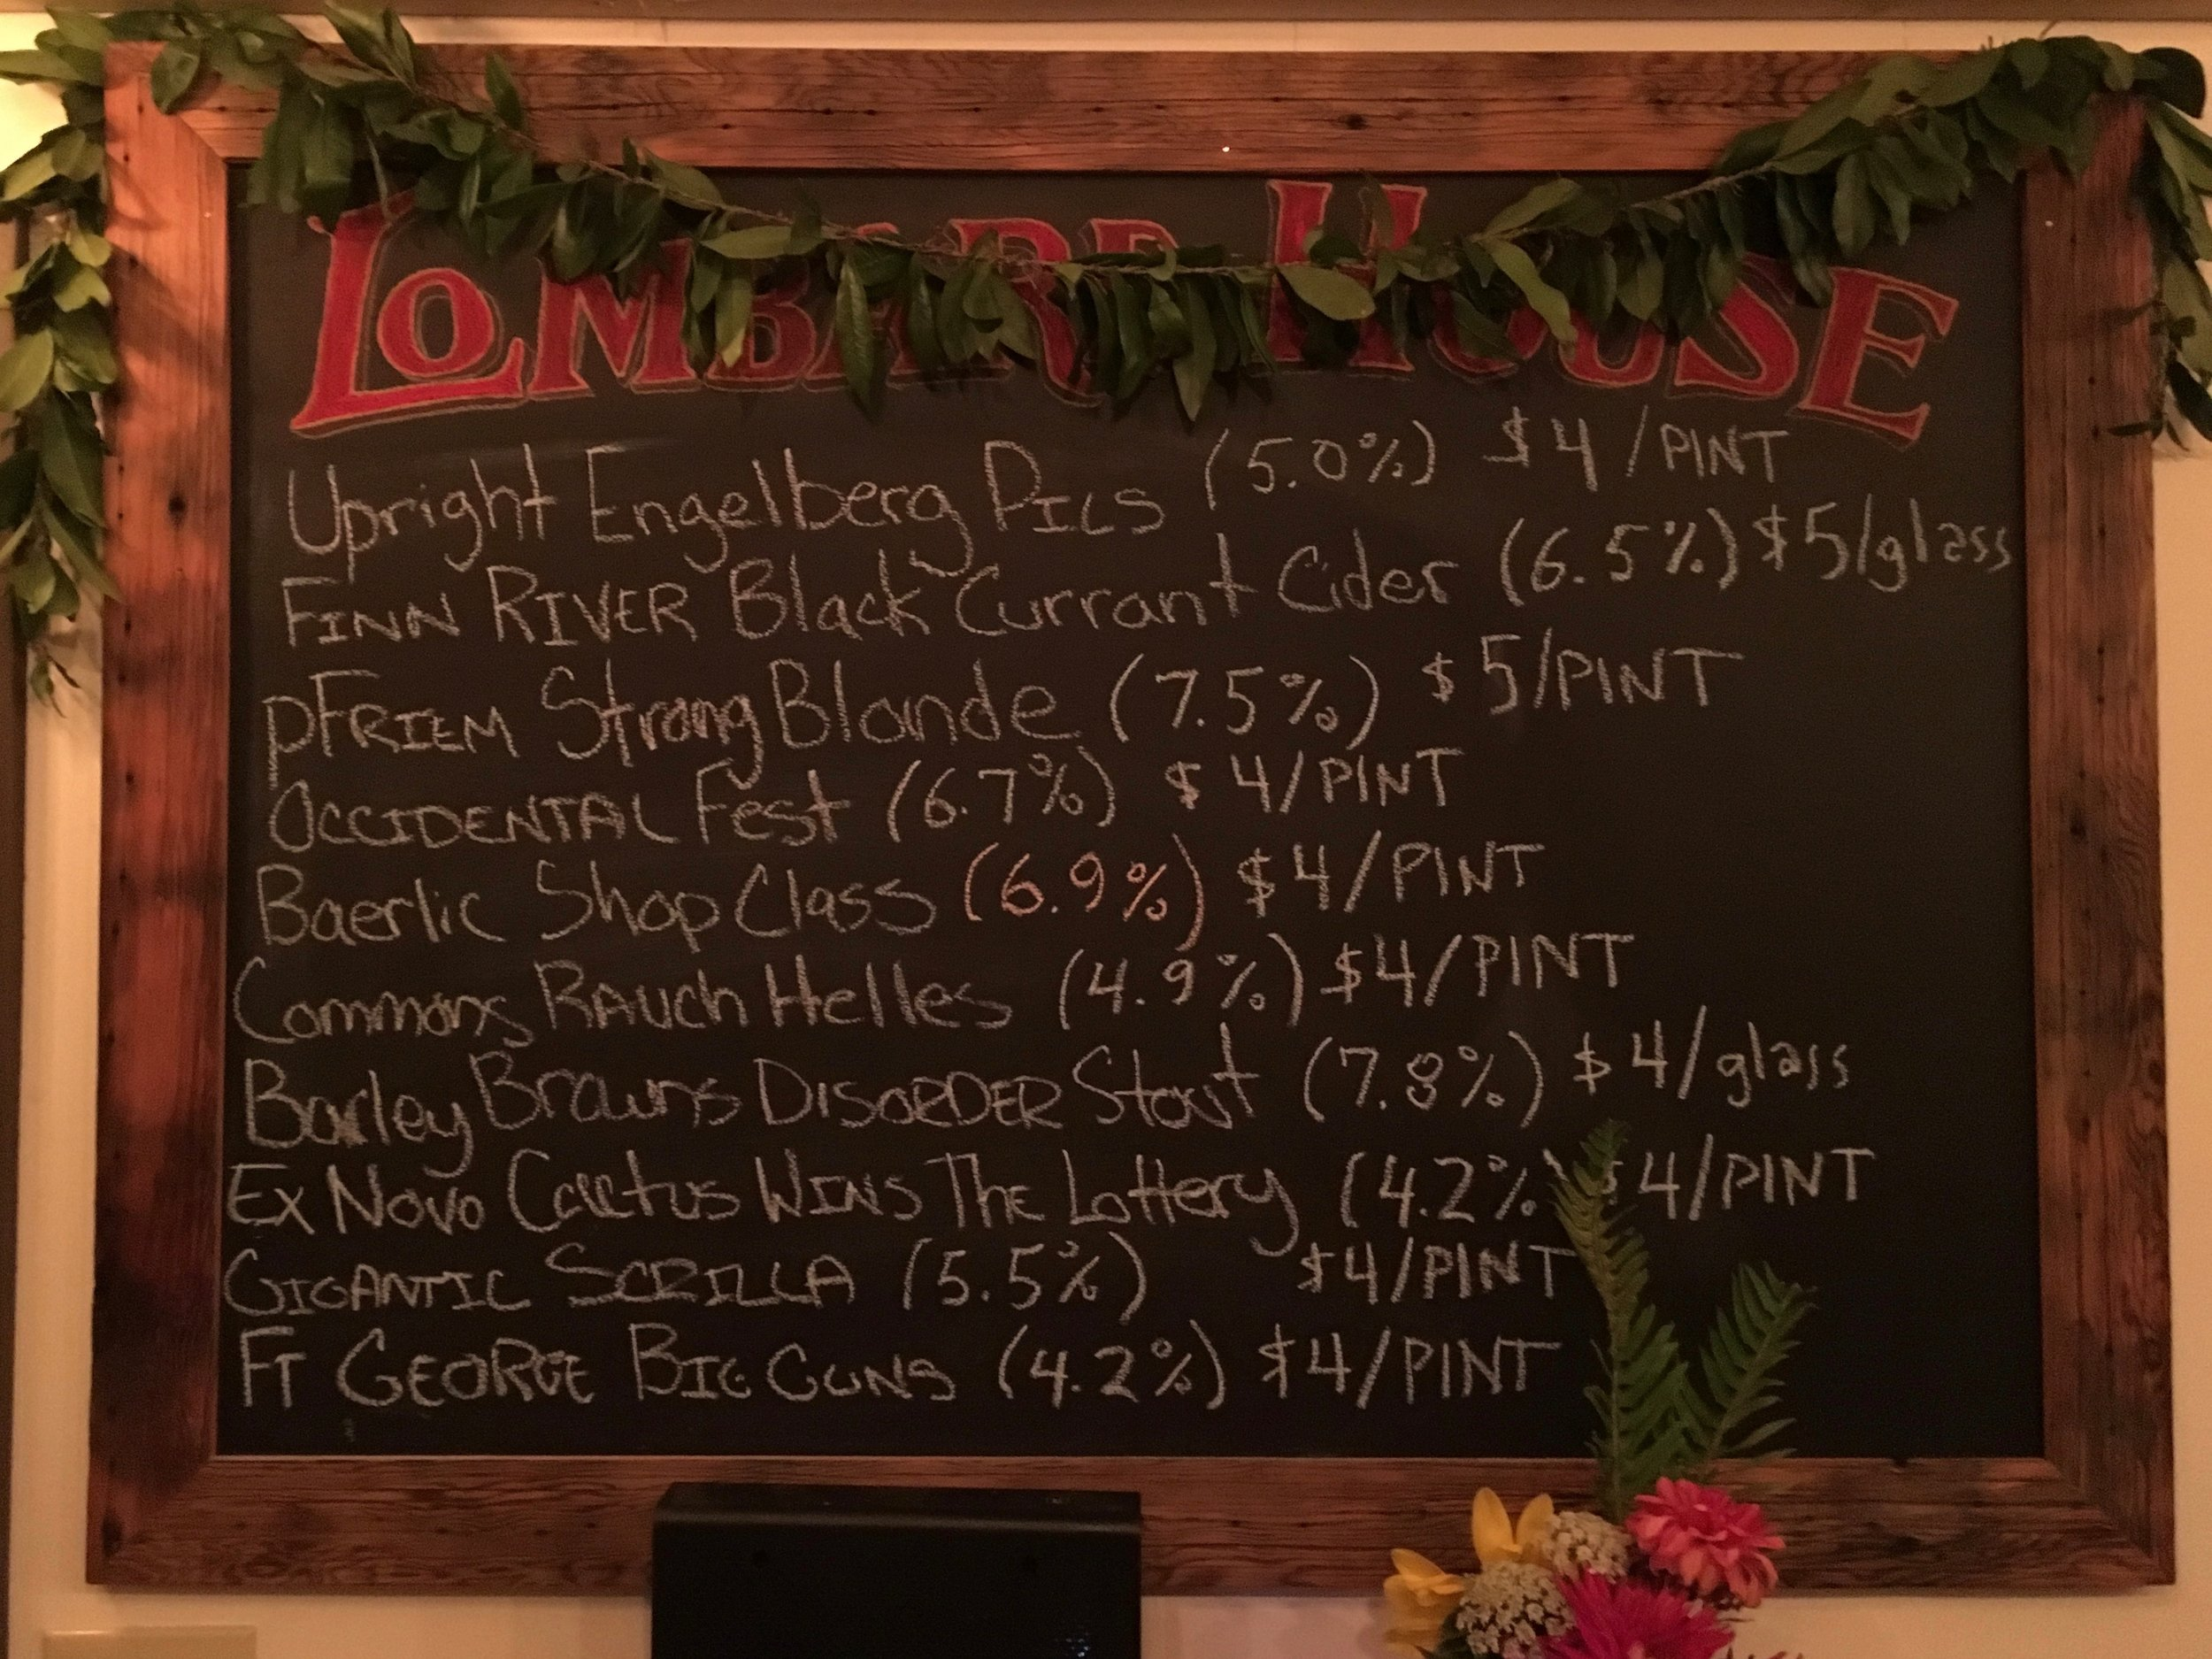 Ten-beers-will-be-on-draft-at-Lombard-House..jpg